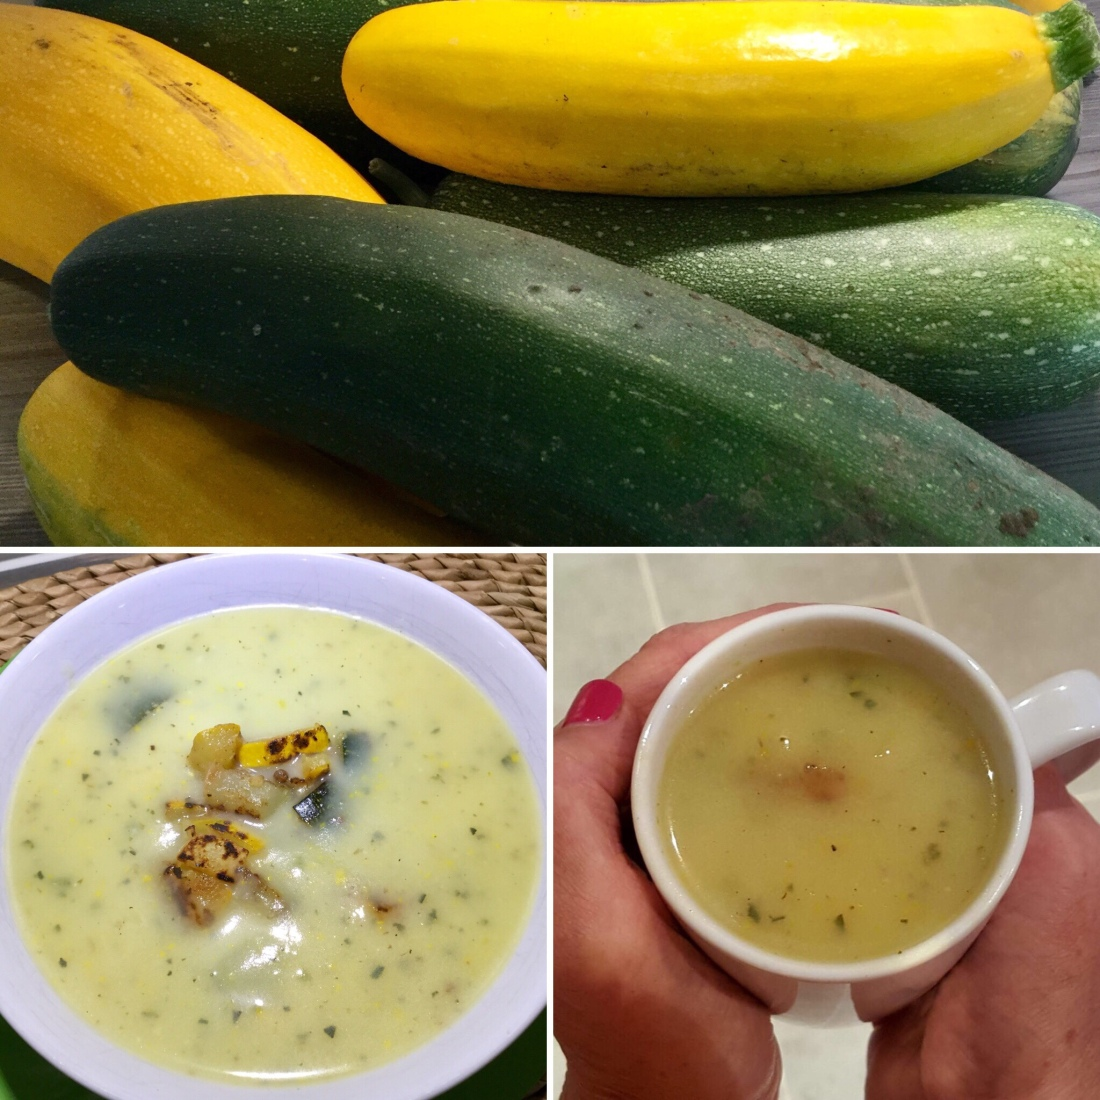 A collage showing a pile of courgettes, a bowl of soup and a mug of soup